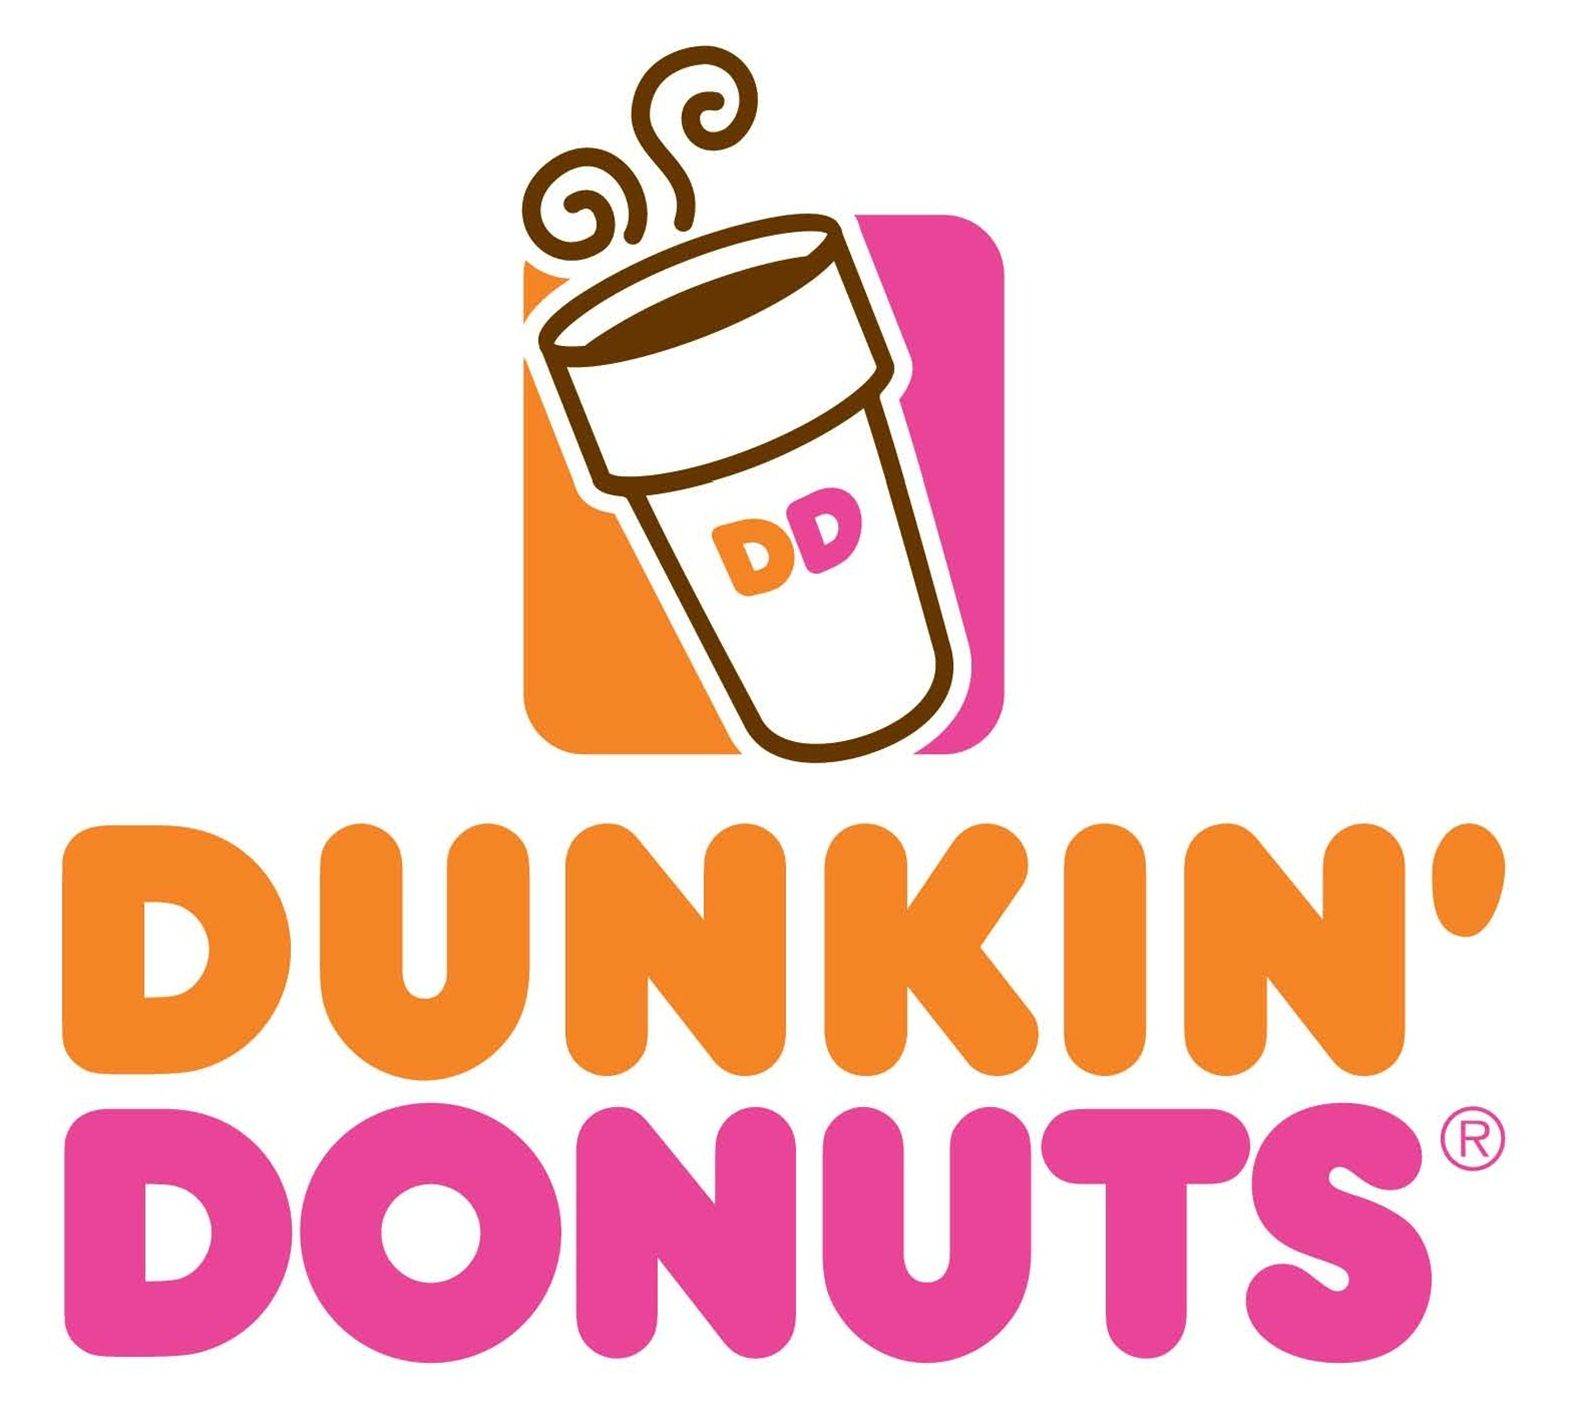 3-Pack Dunkin' Donuts Coffee Samples  $0 at Dunkin' Donuts online deal